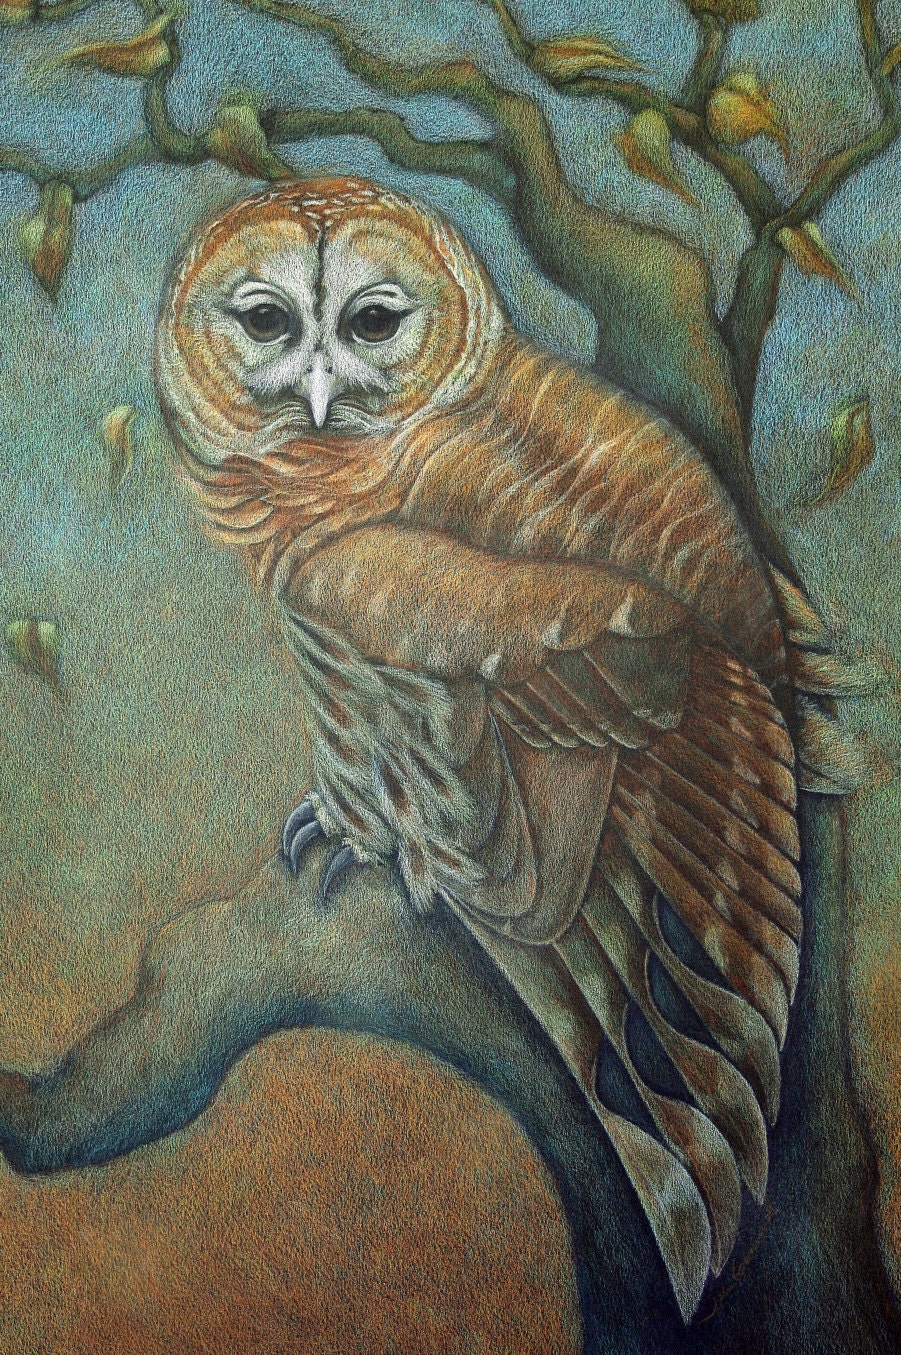 It's just a photo of Eloquent Barred Owl Drawing